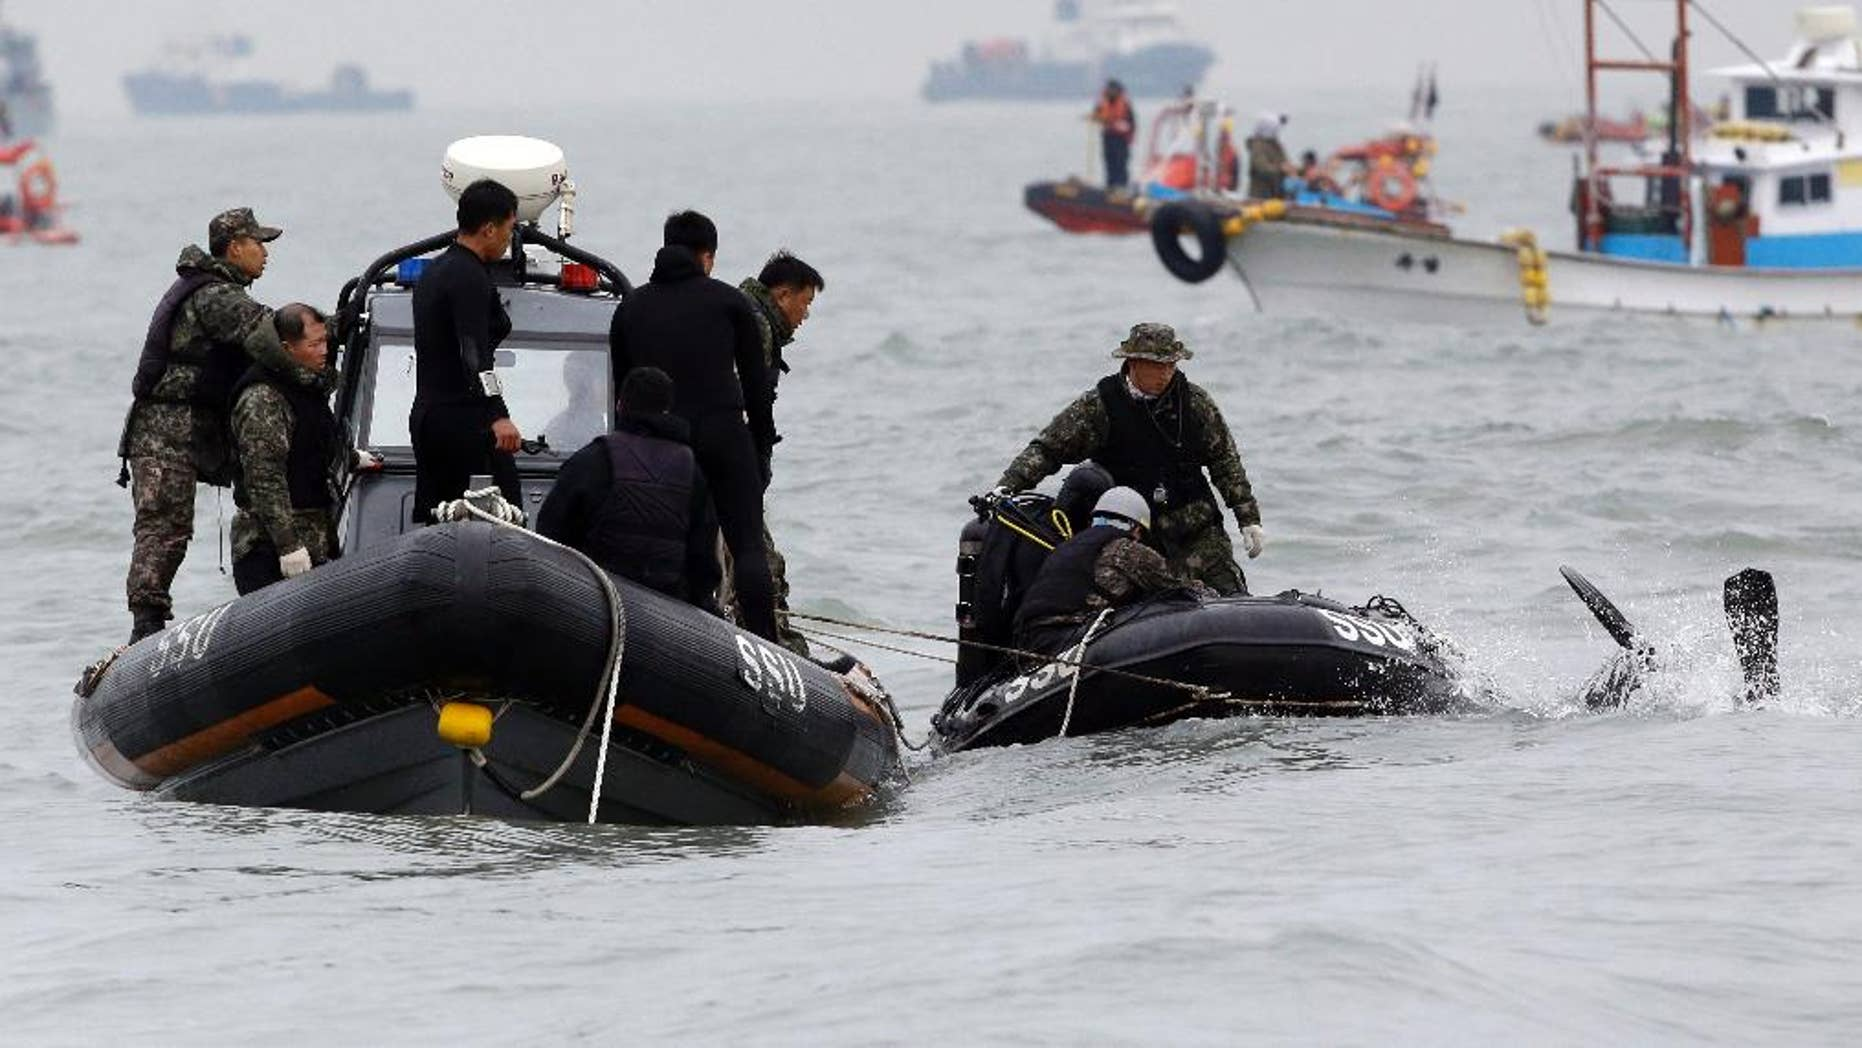 South Korean navy's frogman dives into a water to search passengers believed to have been trapped in the sunken ferry Sewol in the water off the southern coast near Jindo, south of Seoul, South Korea, Saturday, April 19, 2014. The captain of the sunken South Korean ferry was arrested Saturday on suspicion of negligence and abandoning people in need, as investigators looked into whether his evacuation order came too late to save lives. Two crew members were also arrested, a prosecutor said. (AP Photo/Lee Jin-man)